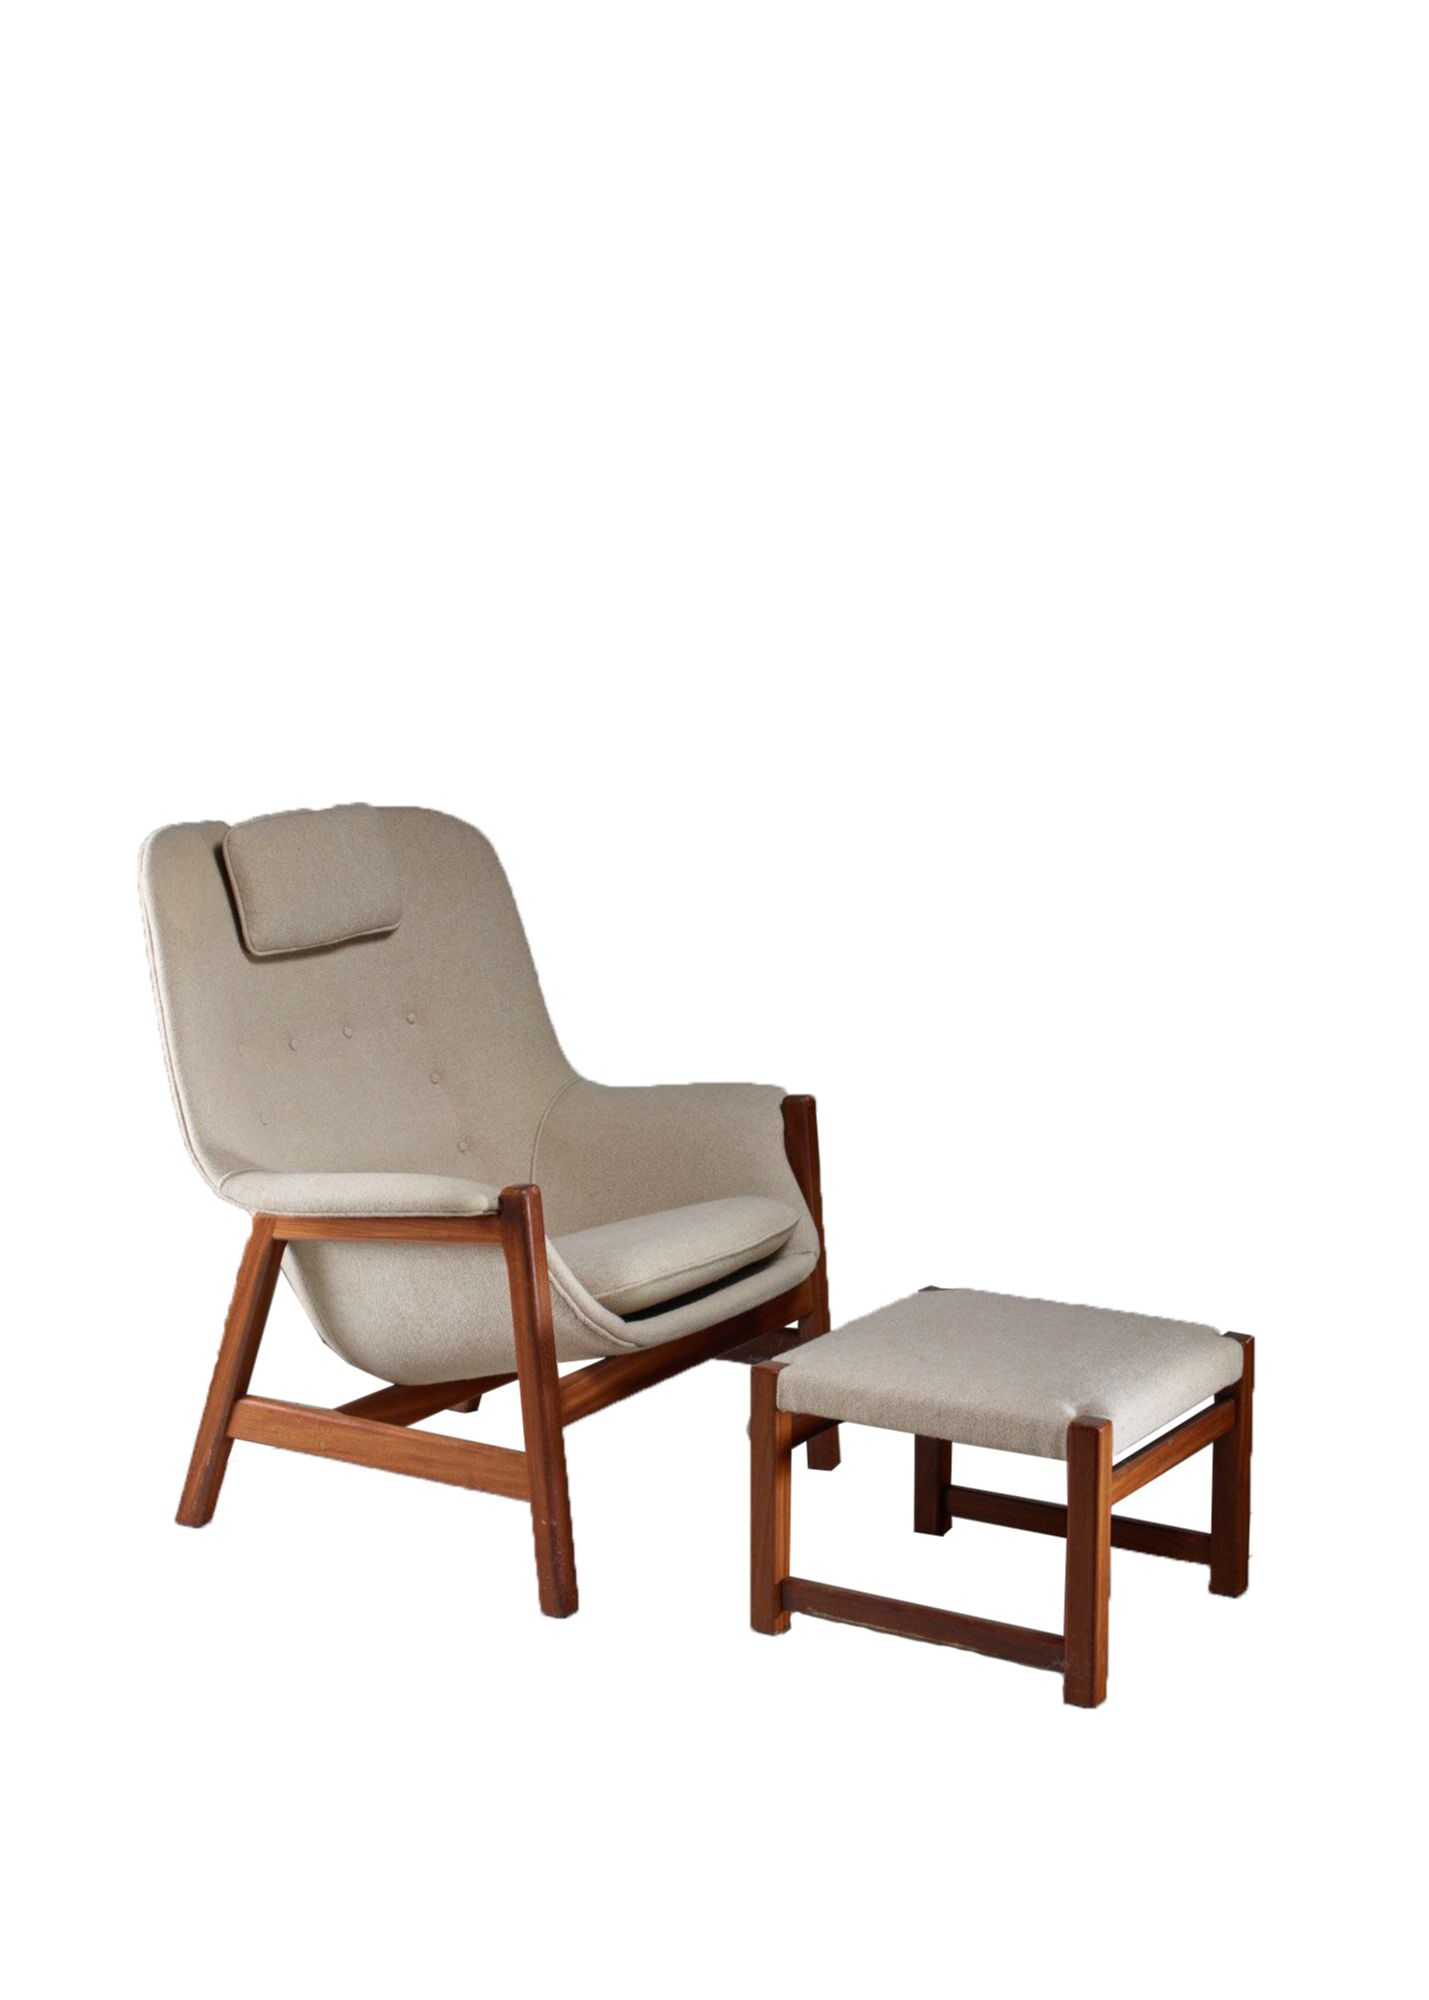 Remarkable Carl Gustav Hiort Af Ornas Lounge Chair With Ottoman Spiritservingveterans Wood Chair Design Ideas Spiritservingveteransorg